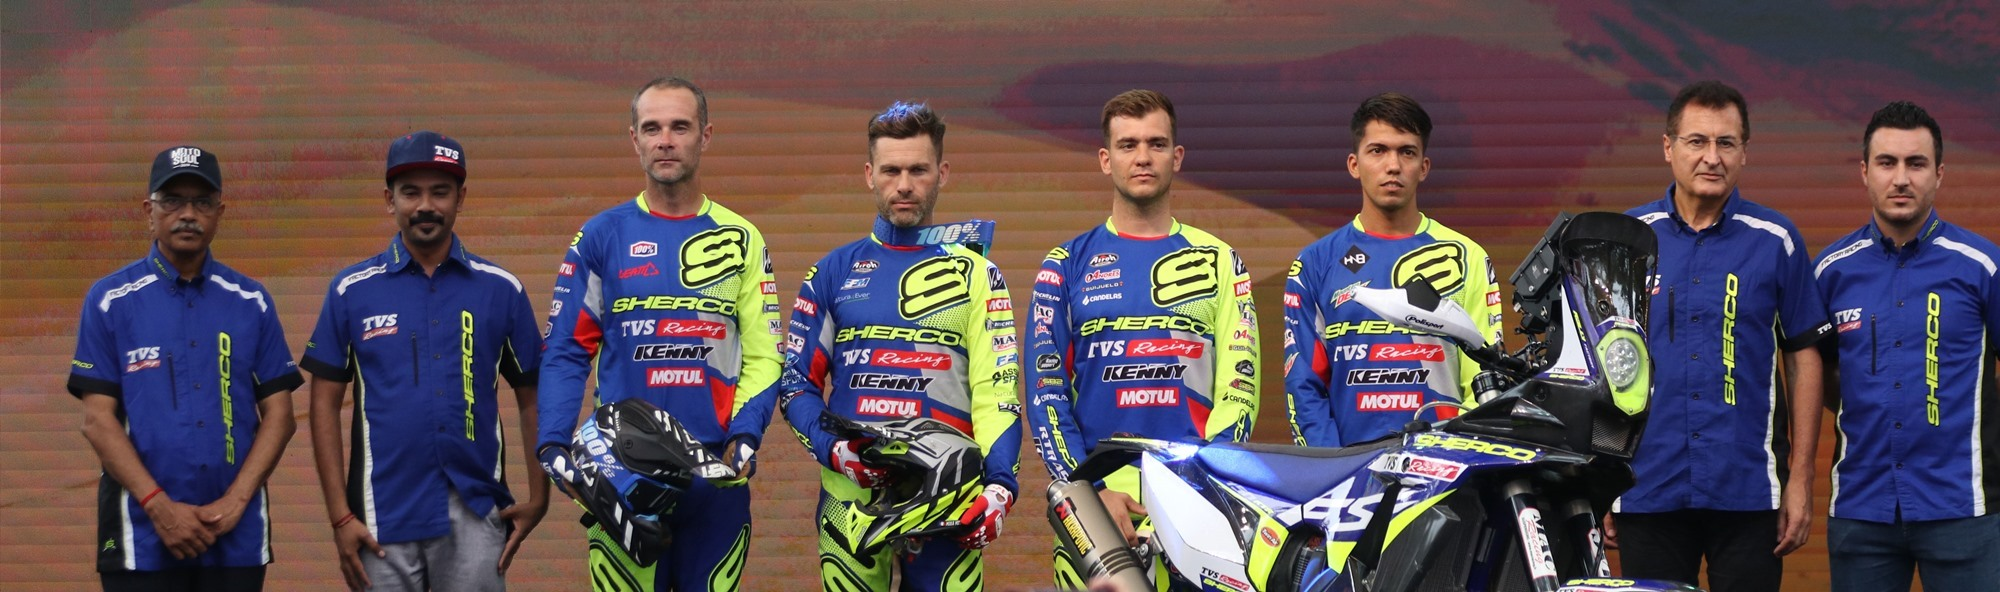 Sherco TVS Rally Factory Team announces riders for Dakar Rally 2020 - Johnny Aubert, Michael Metge, Lorenzo Santolino, Harith Noah